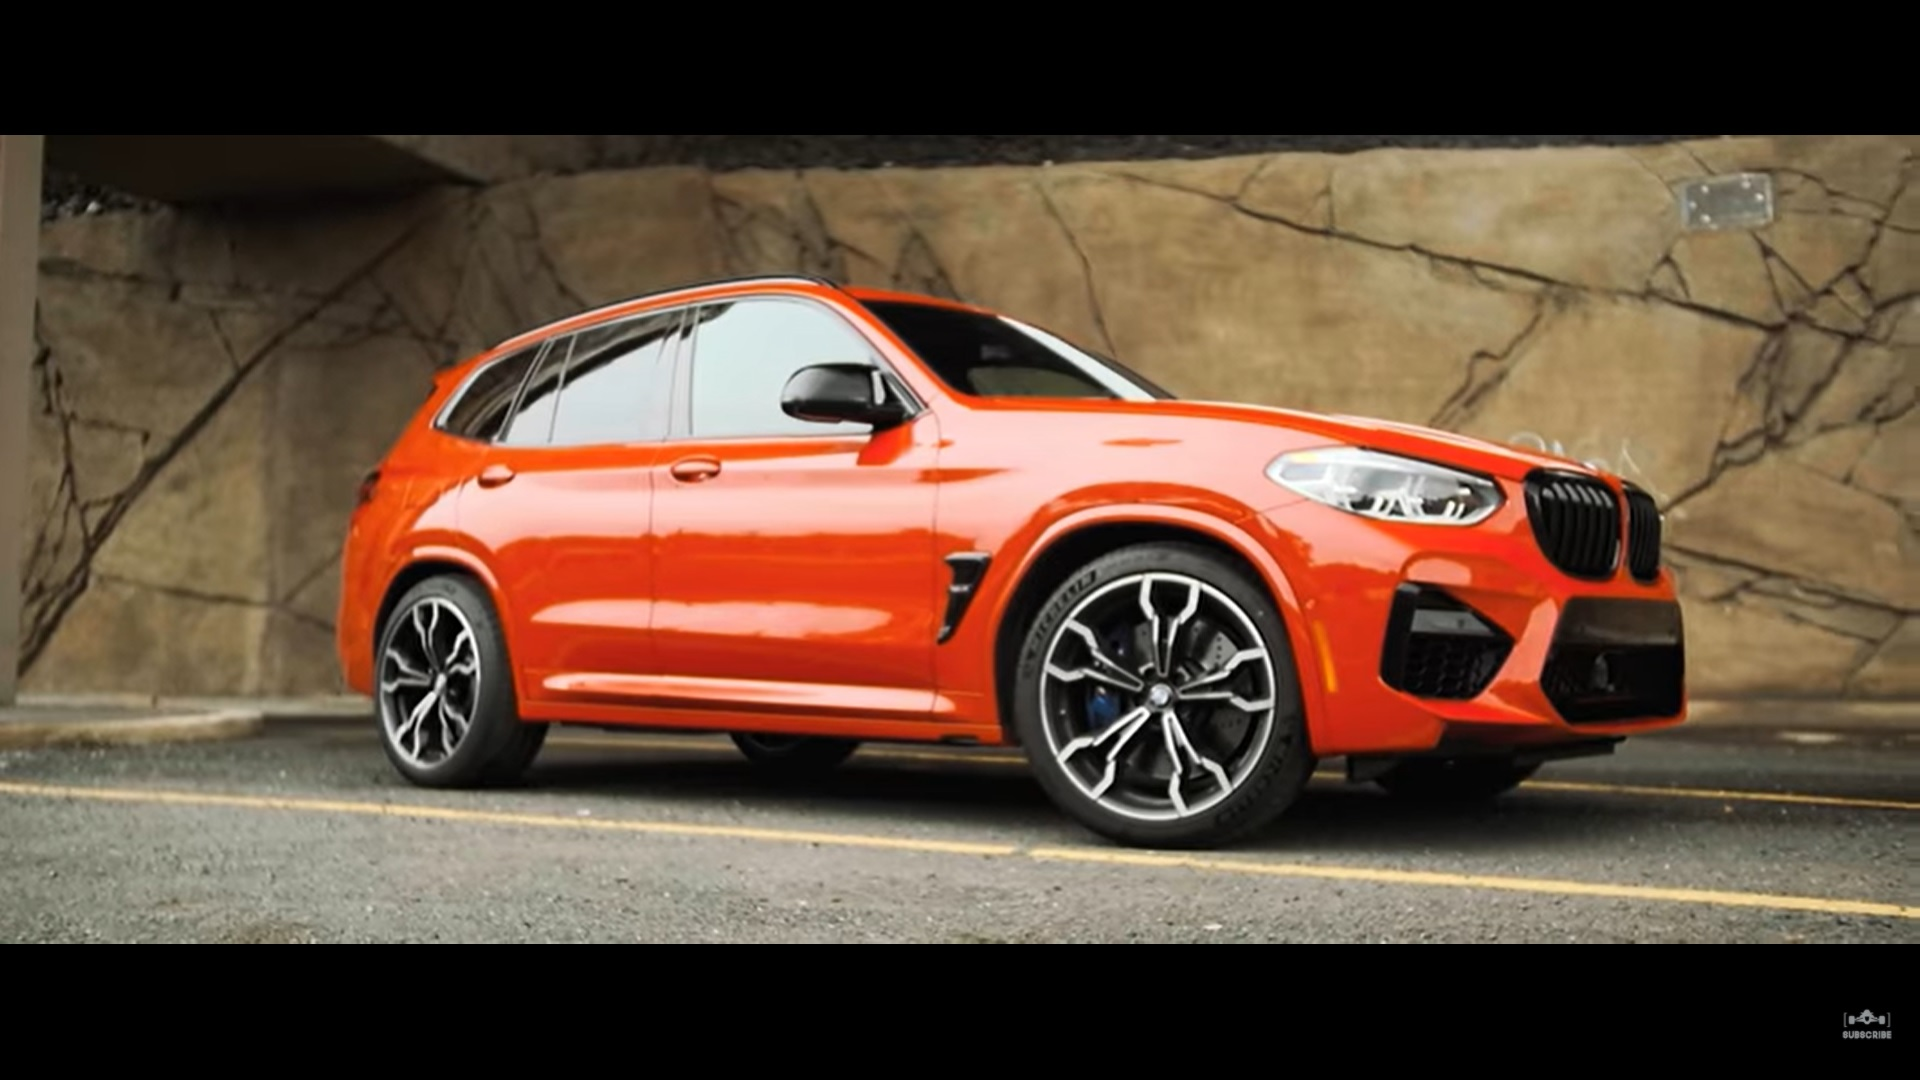 Why Can T This Tuned 700hp Bmw X3 M Give The Business To A Mercedes Amg Gt R